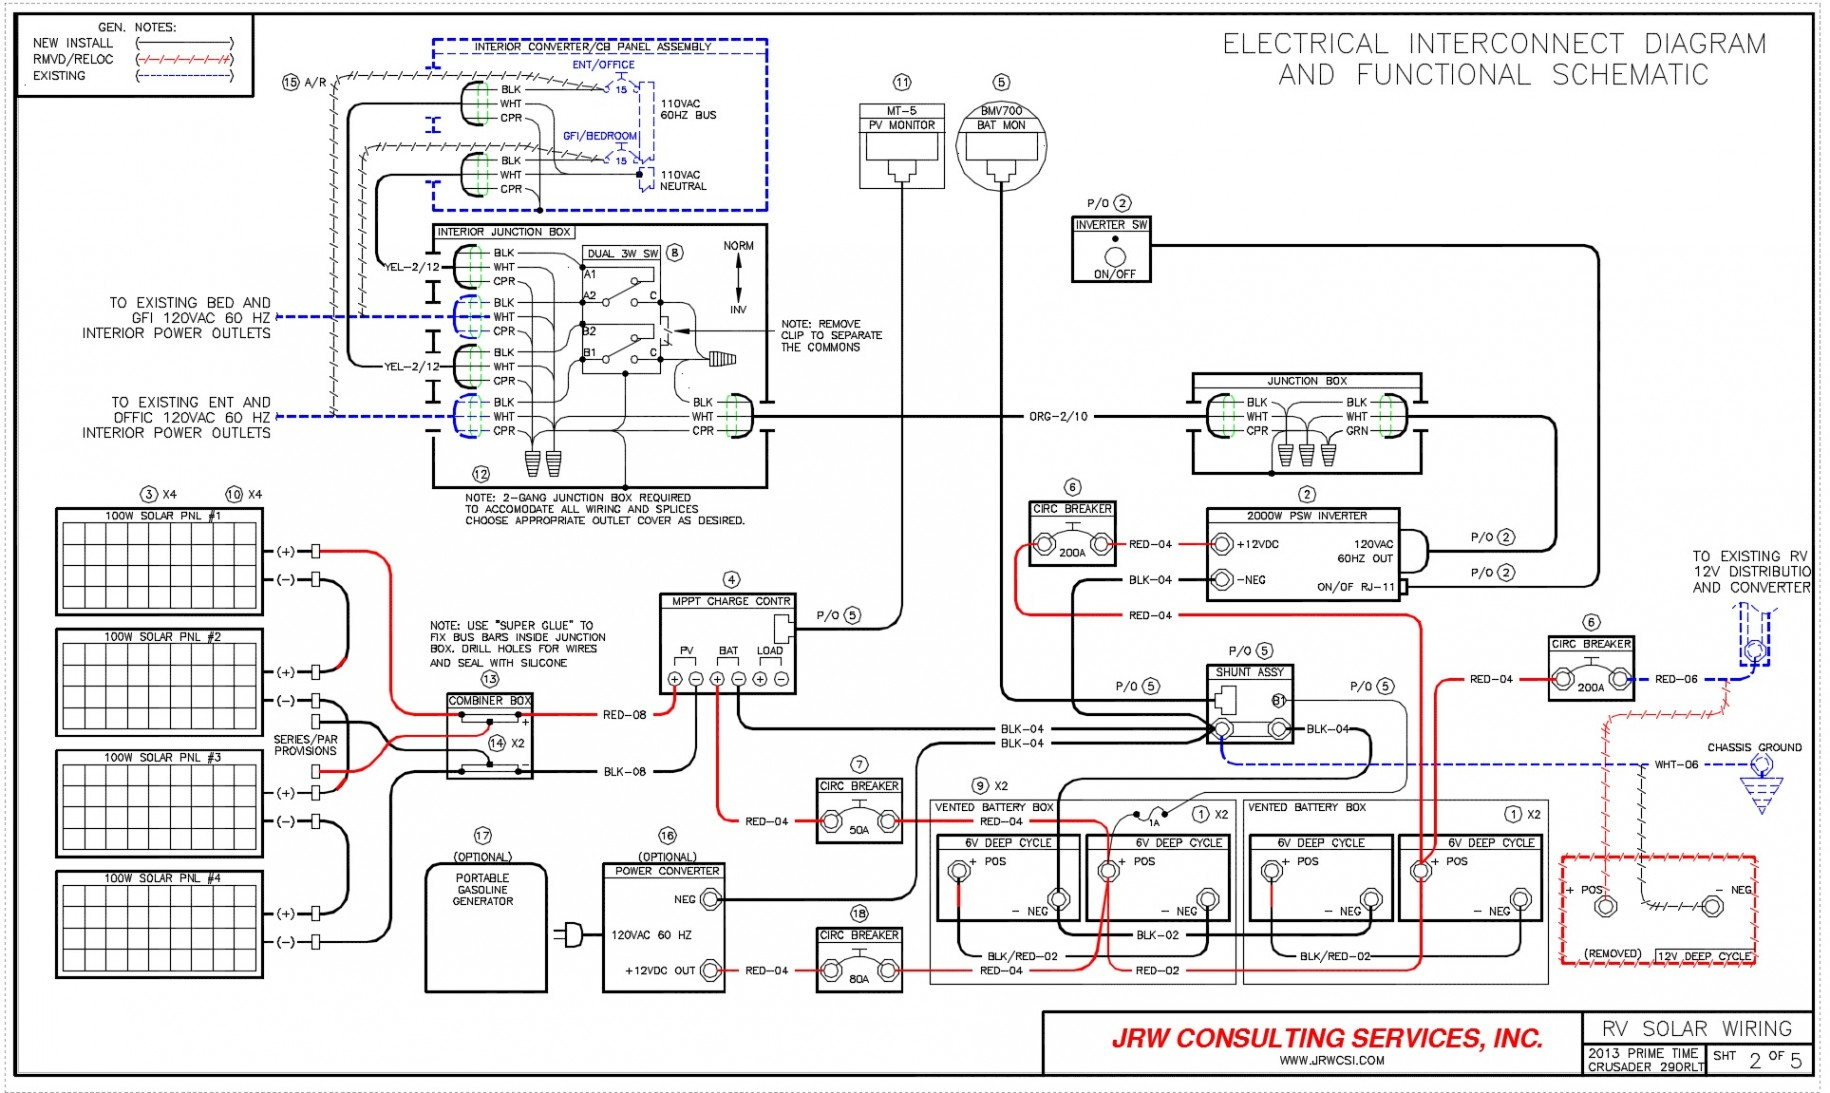 rv holding tank wiring diagram Download-Black Tank Flush System Diagram – Rv Holding Tank Wiring Diagram Unique Wiring Diagram Od Rv 6-j